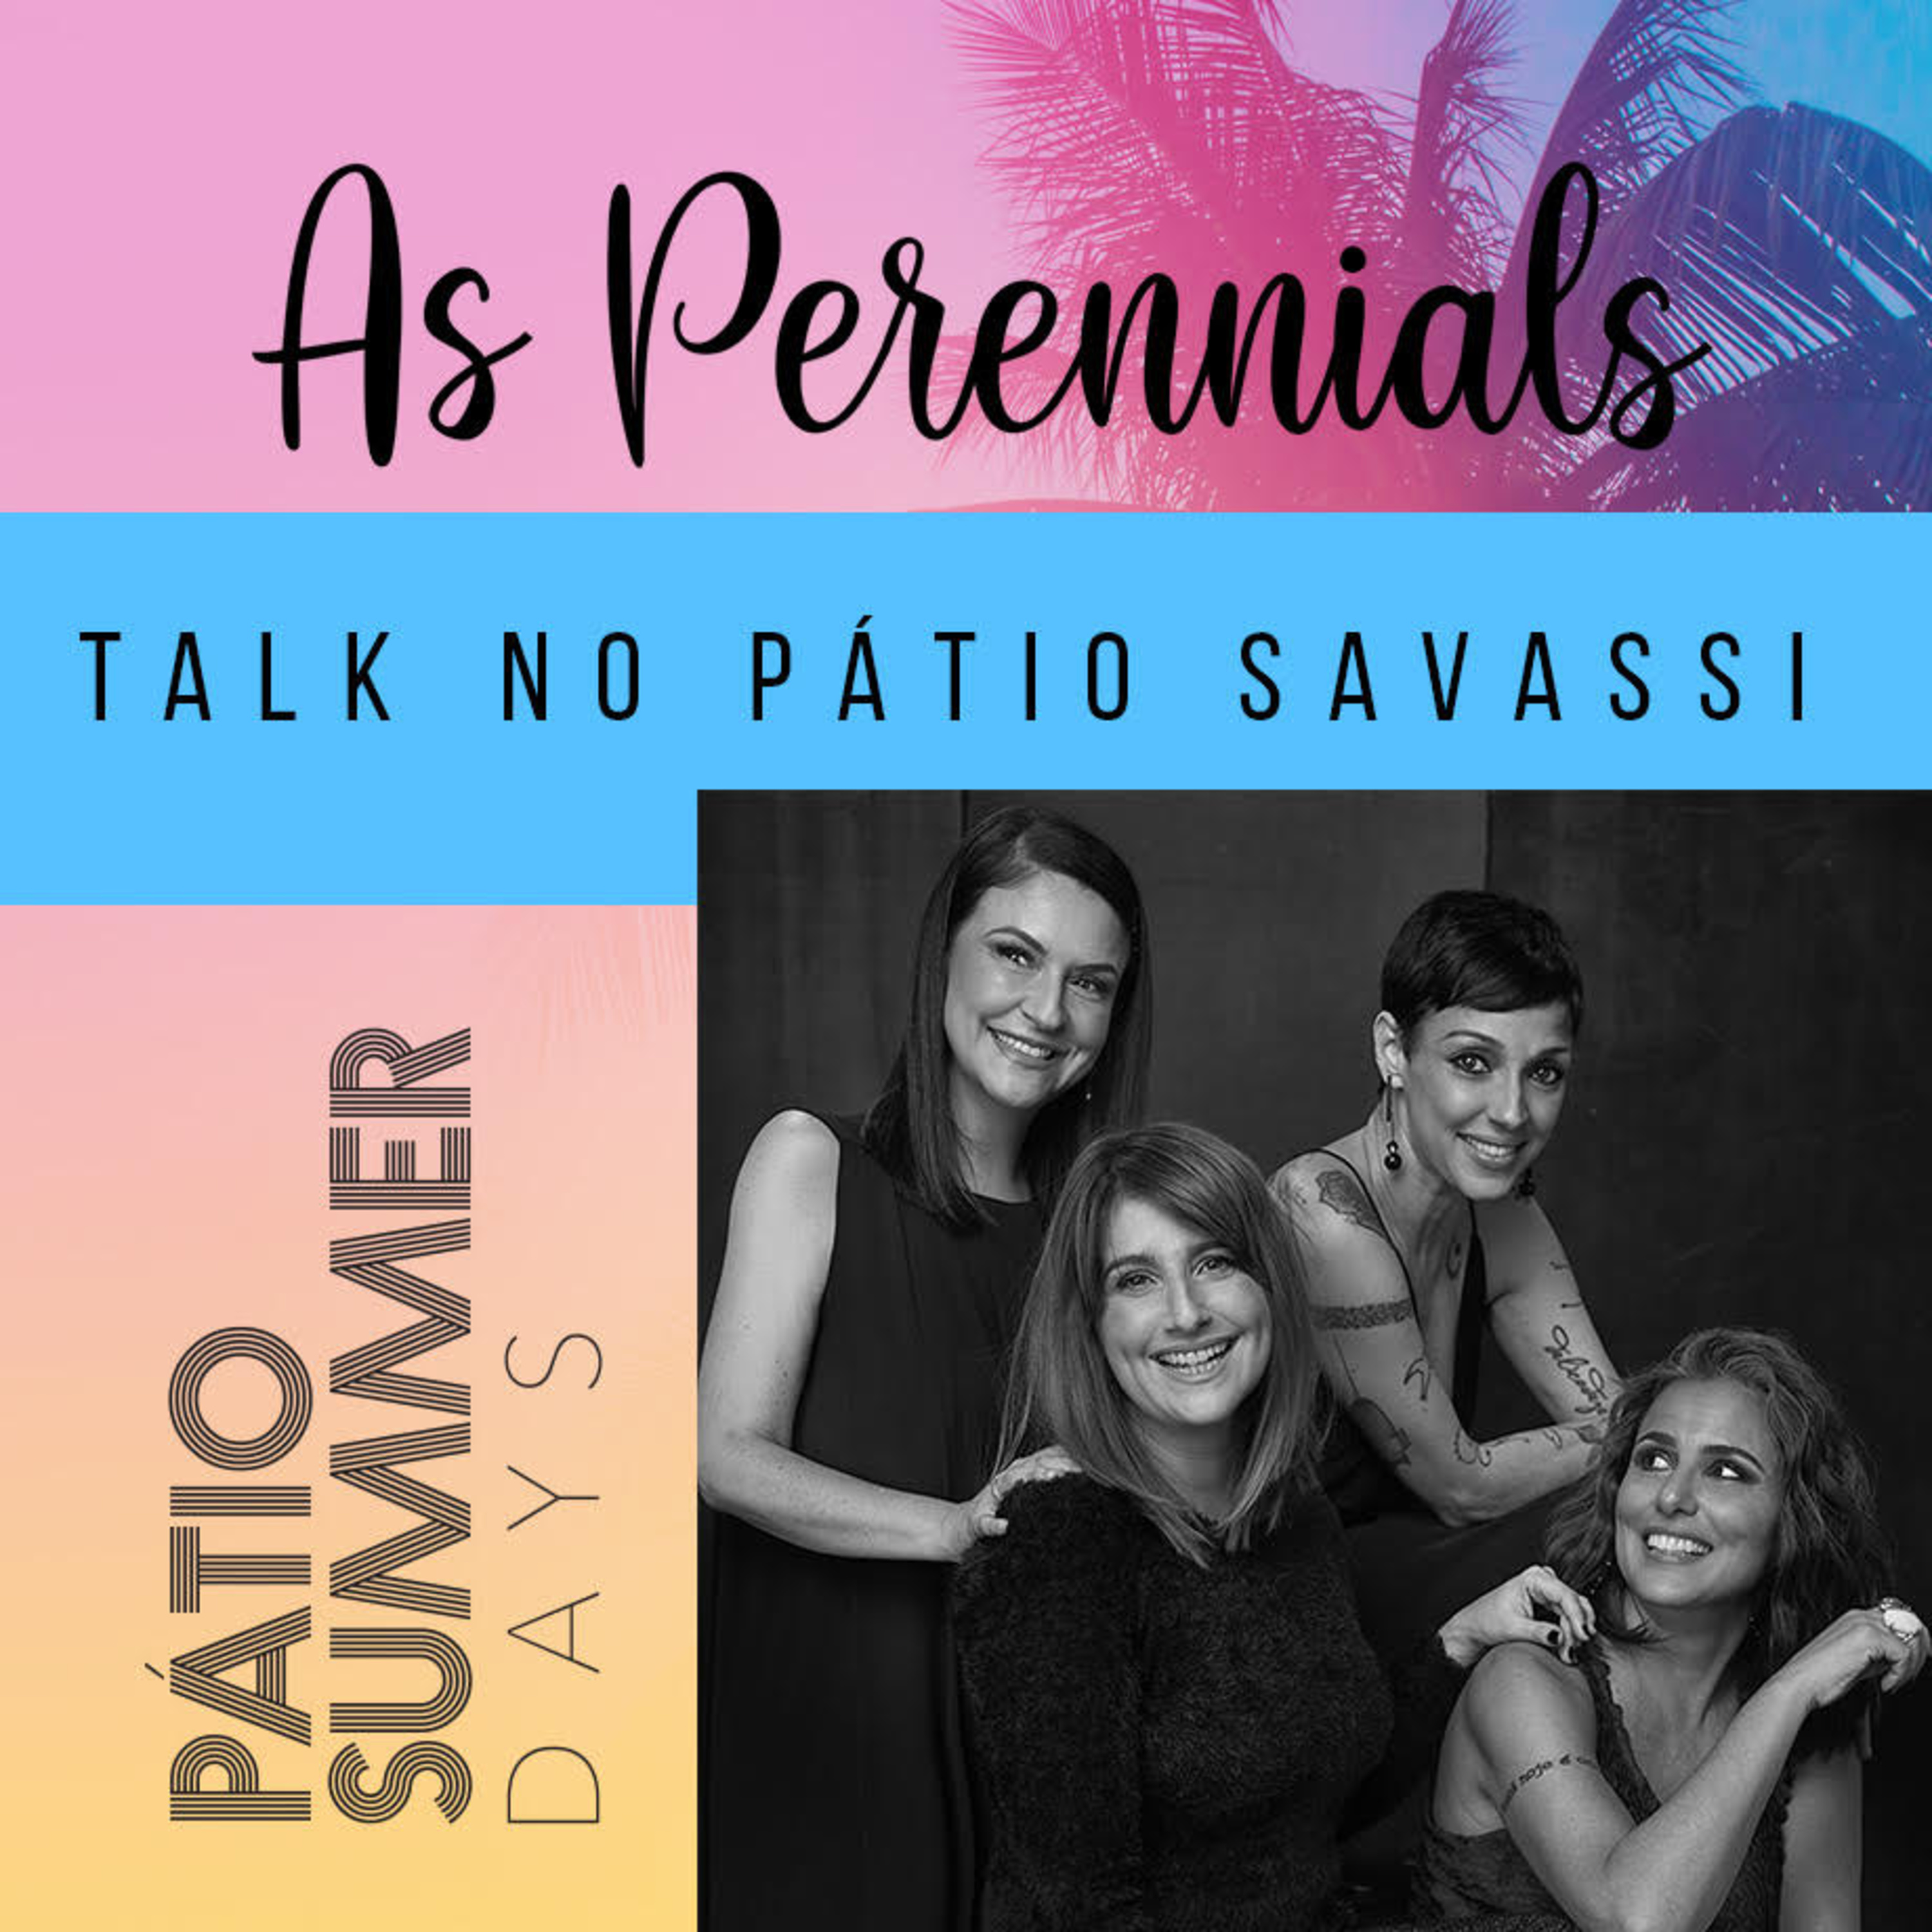 EXTRA! EXTRA! Perennials Talks no Pátio Savassi.